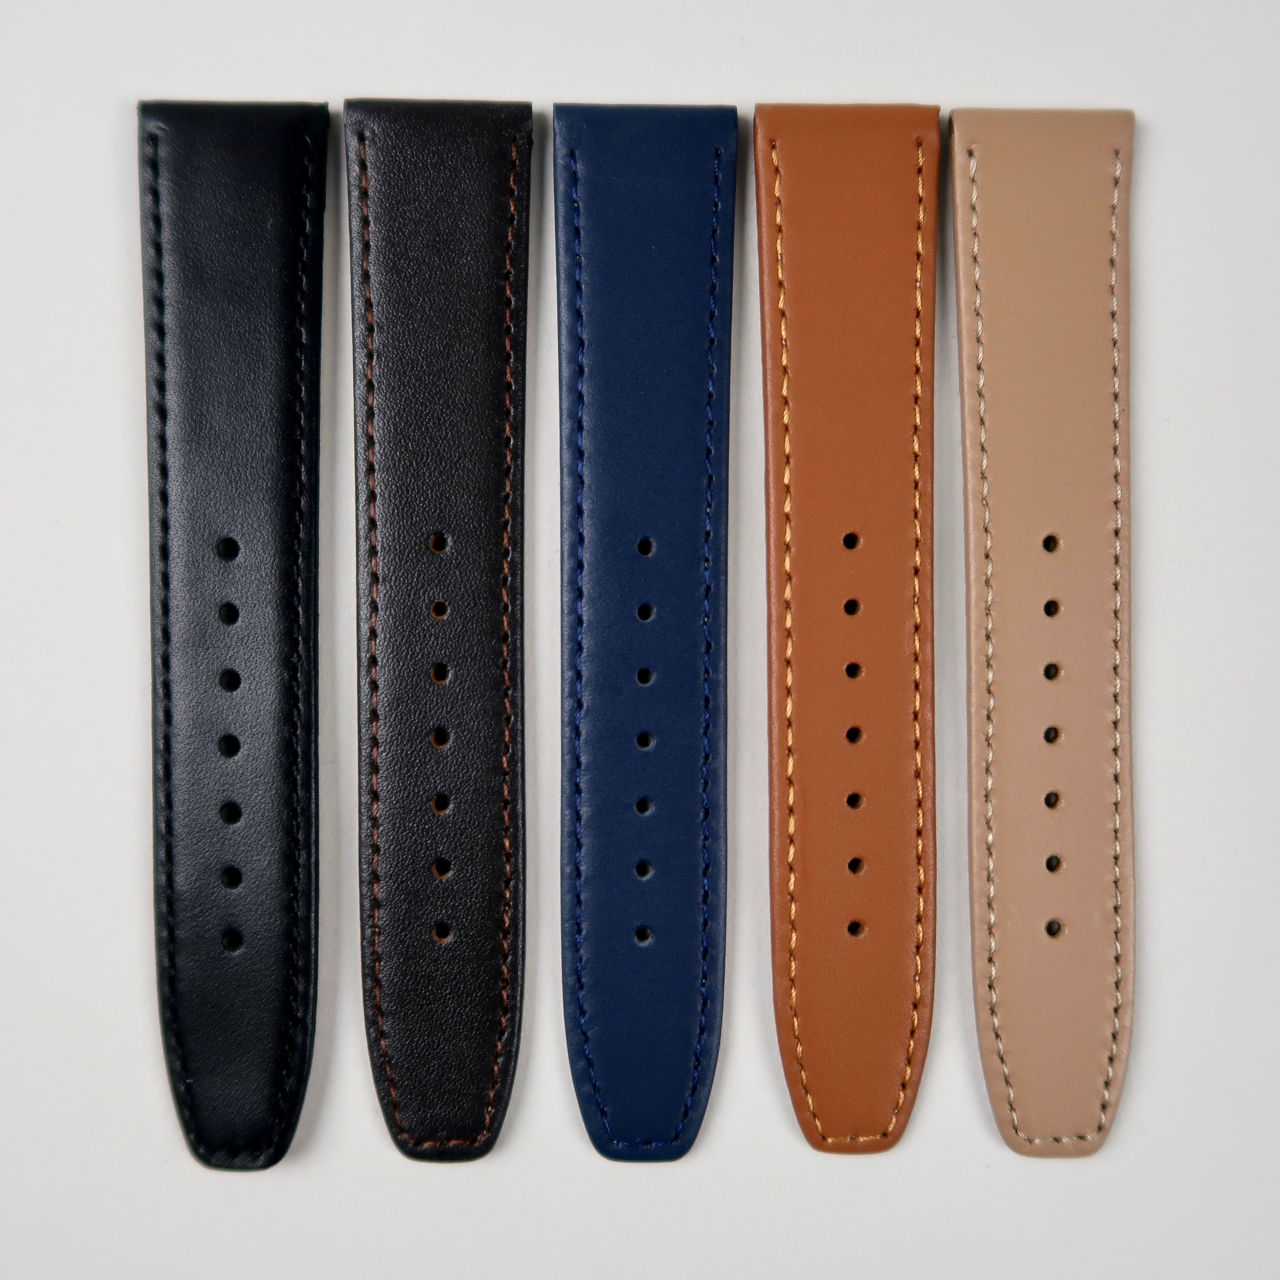 Smooth calf leather watch straps